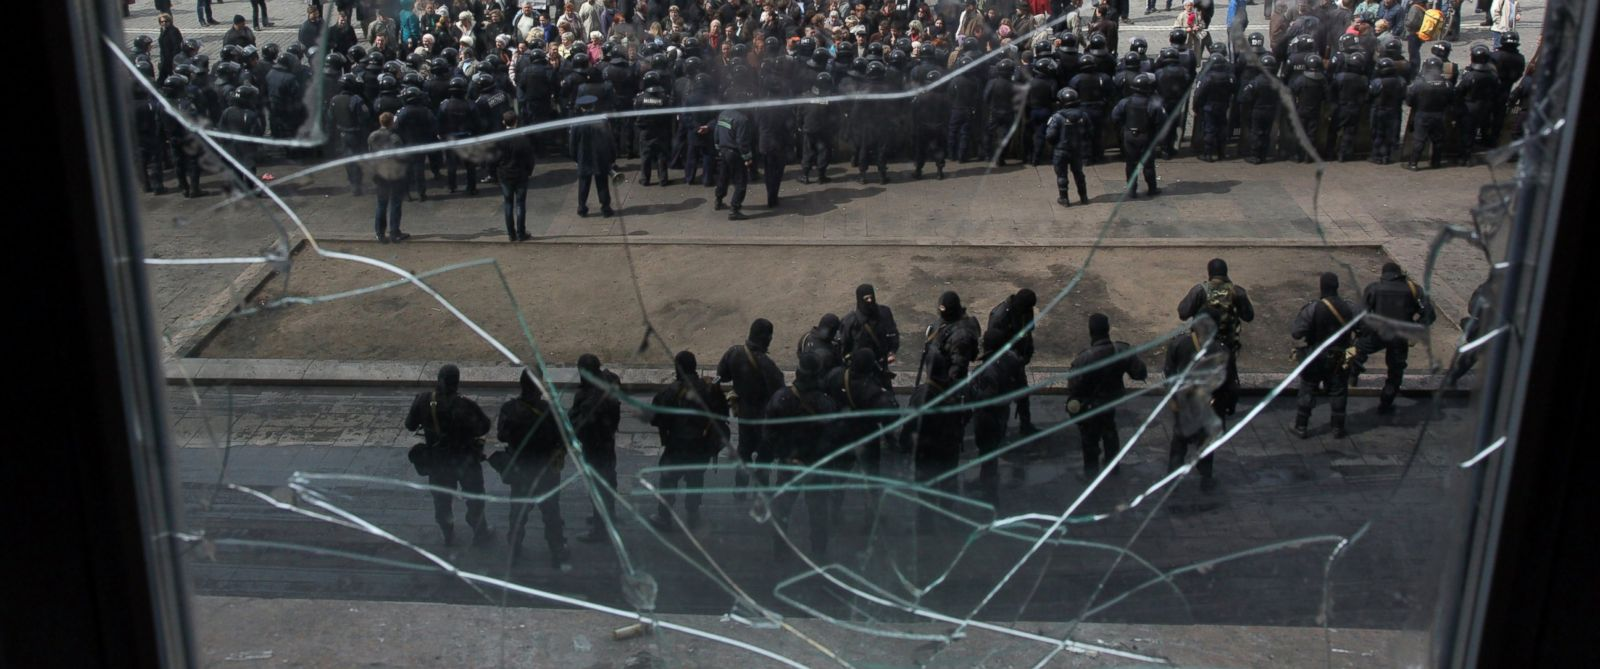 PHOTO: A photo taken through a shattered window shows pro-Russian protesters gathered in front of Ukrainian police officers, who are standing guard of the Kharkiv regional state administration building on April 8, 2014.